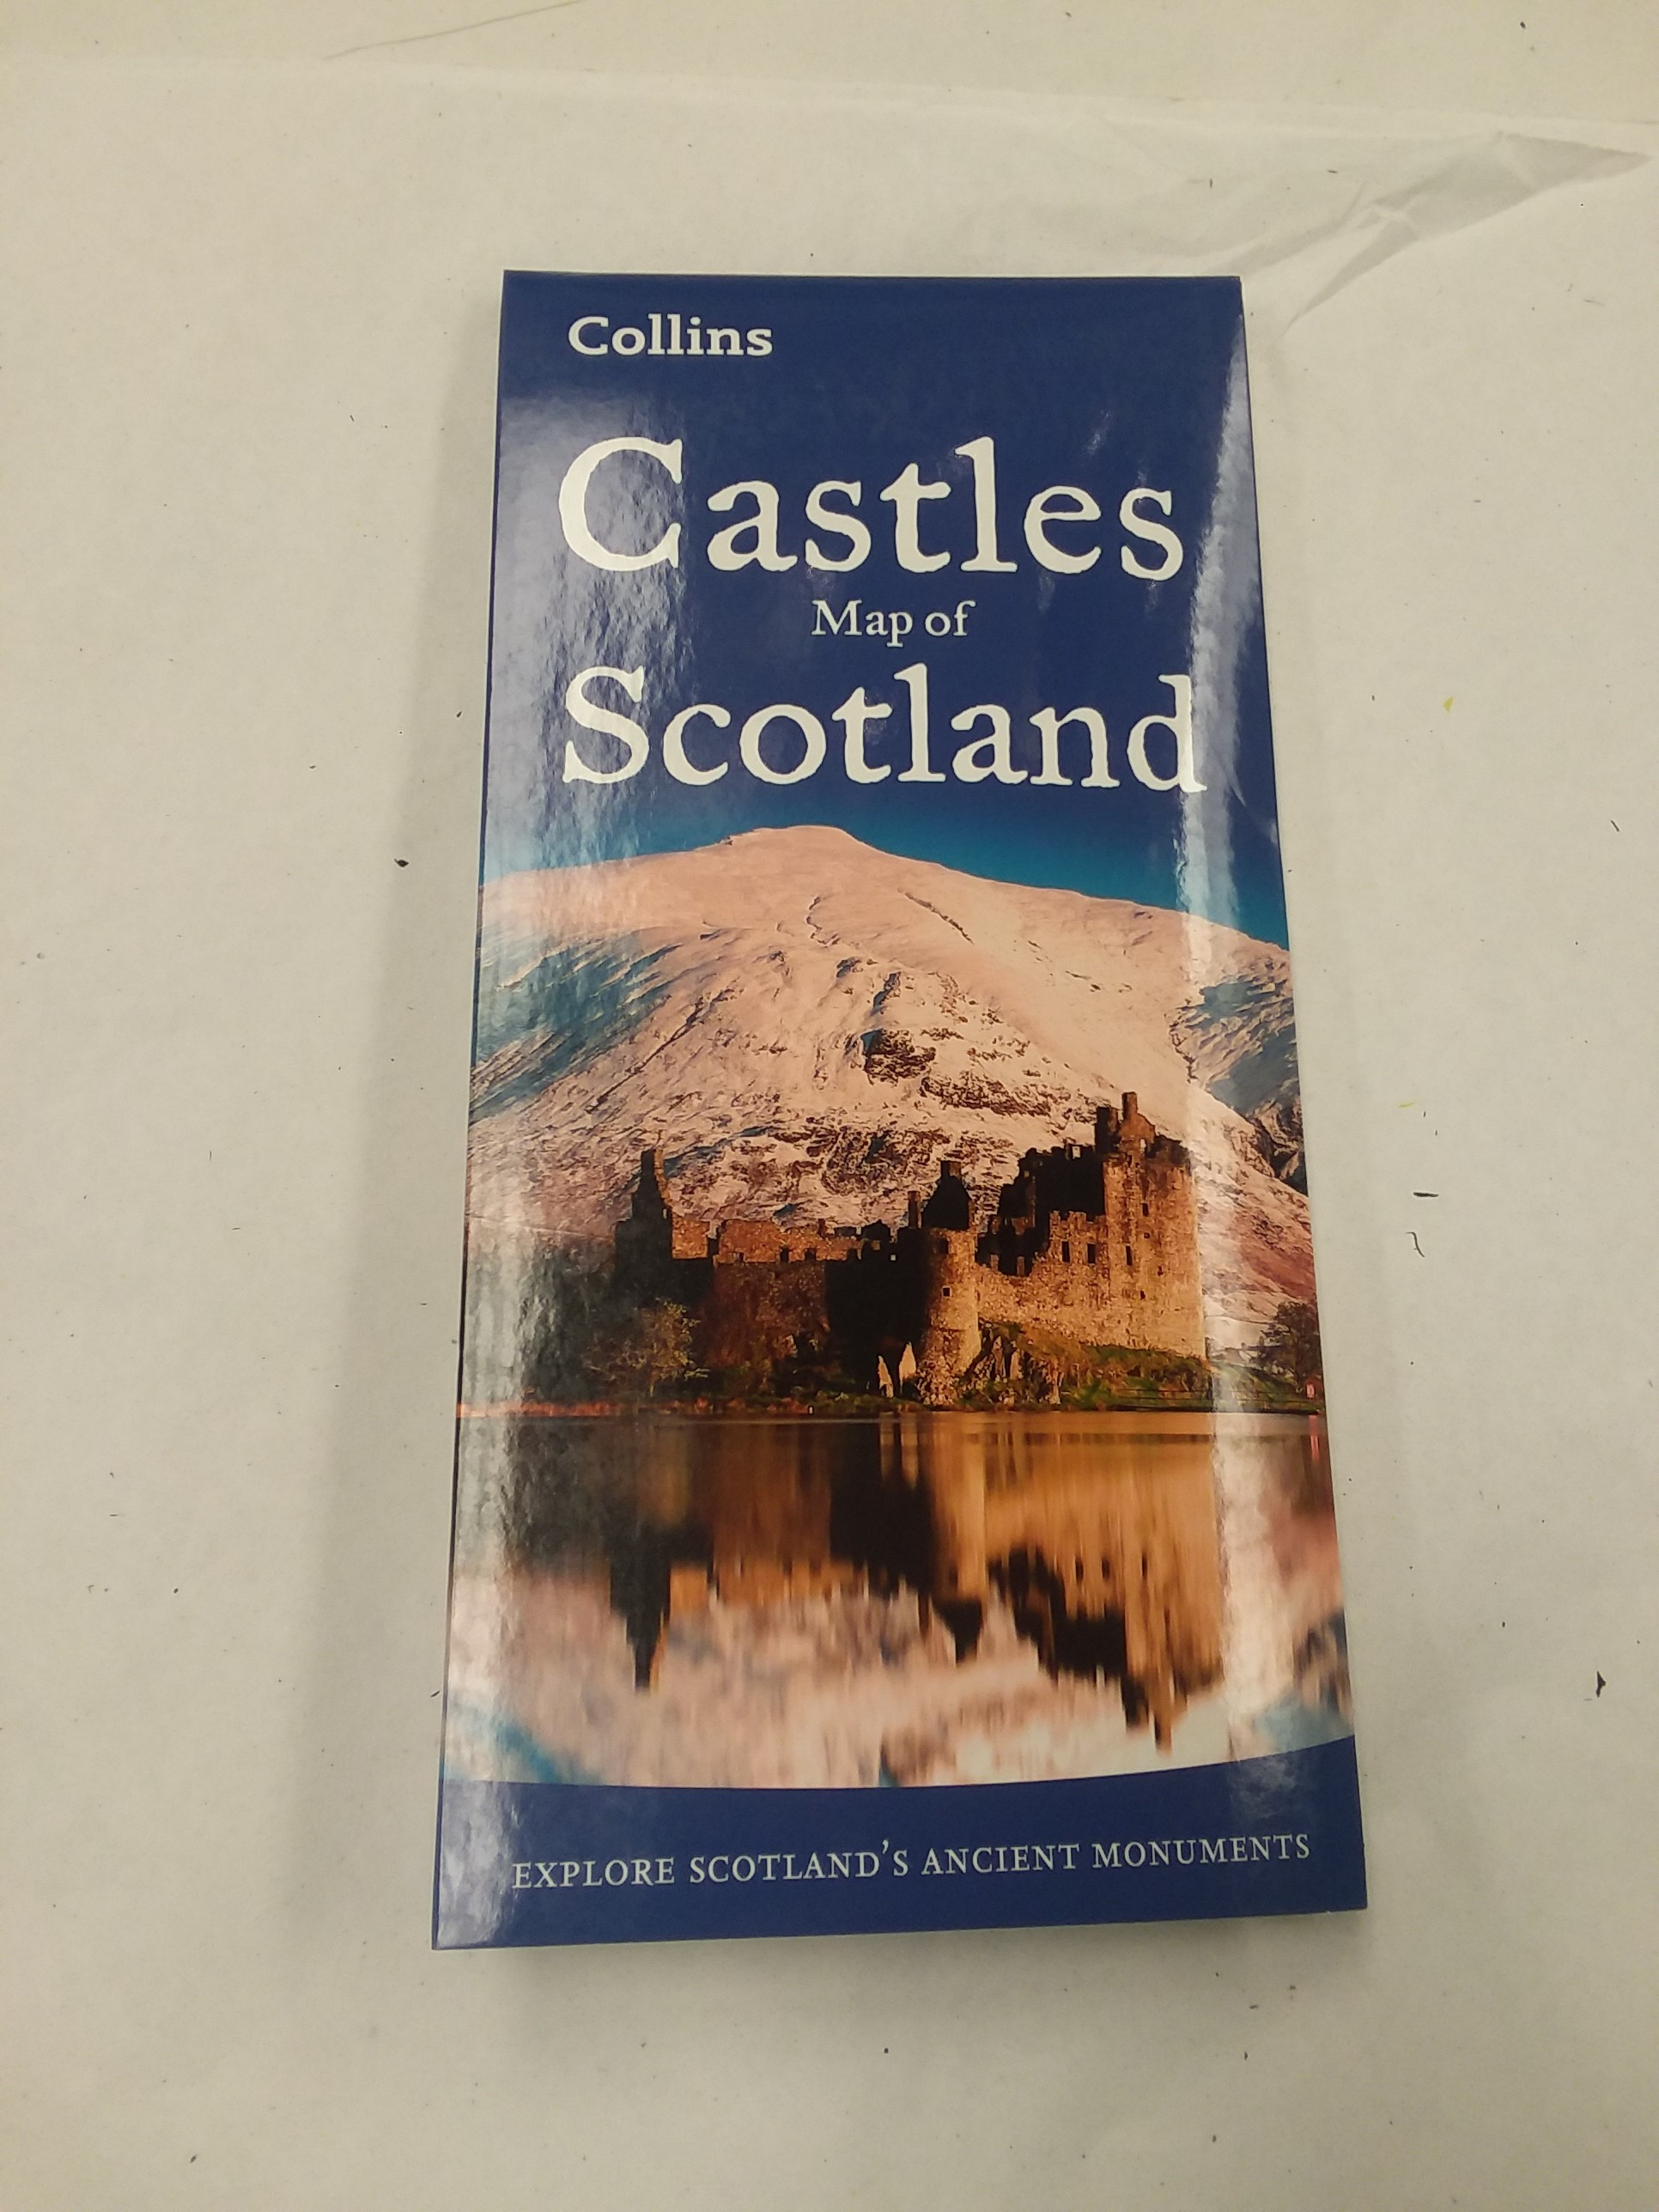 Castles Map of Scotland on